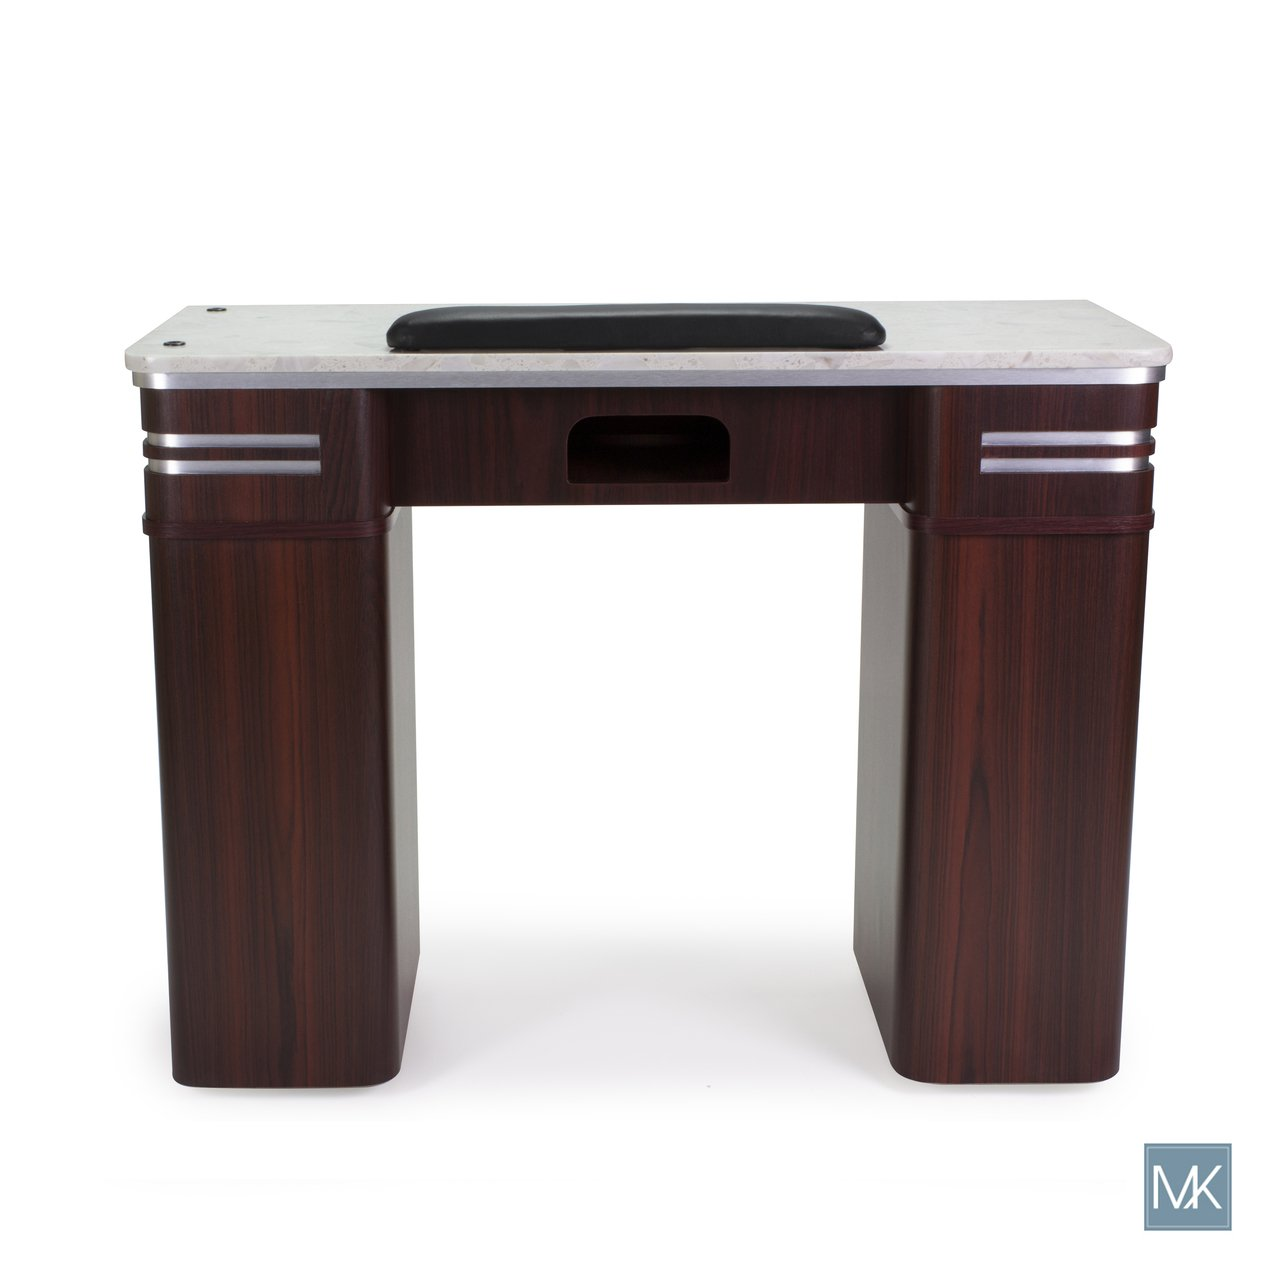 Mayakoba Avon I Manicure Table with Vent Salon furniture